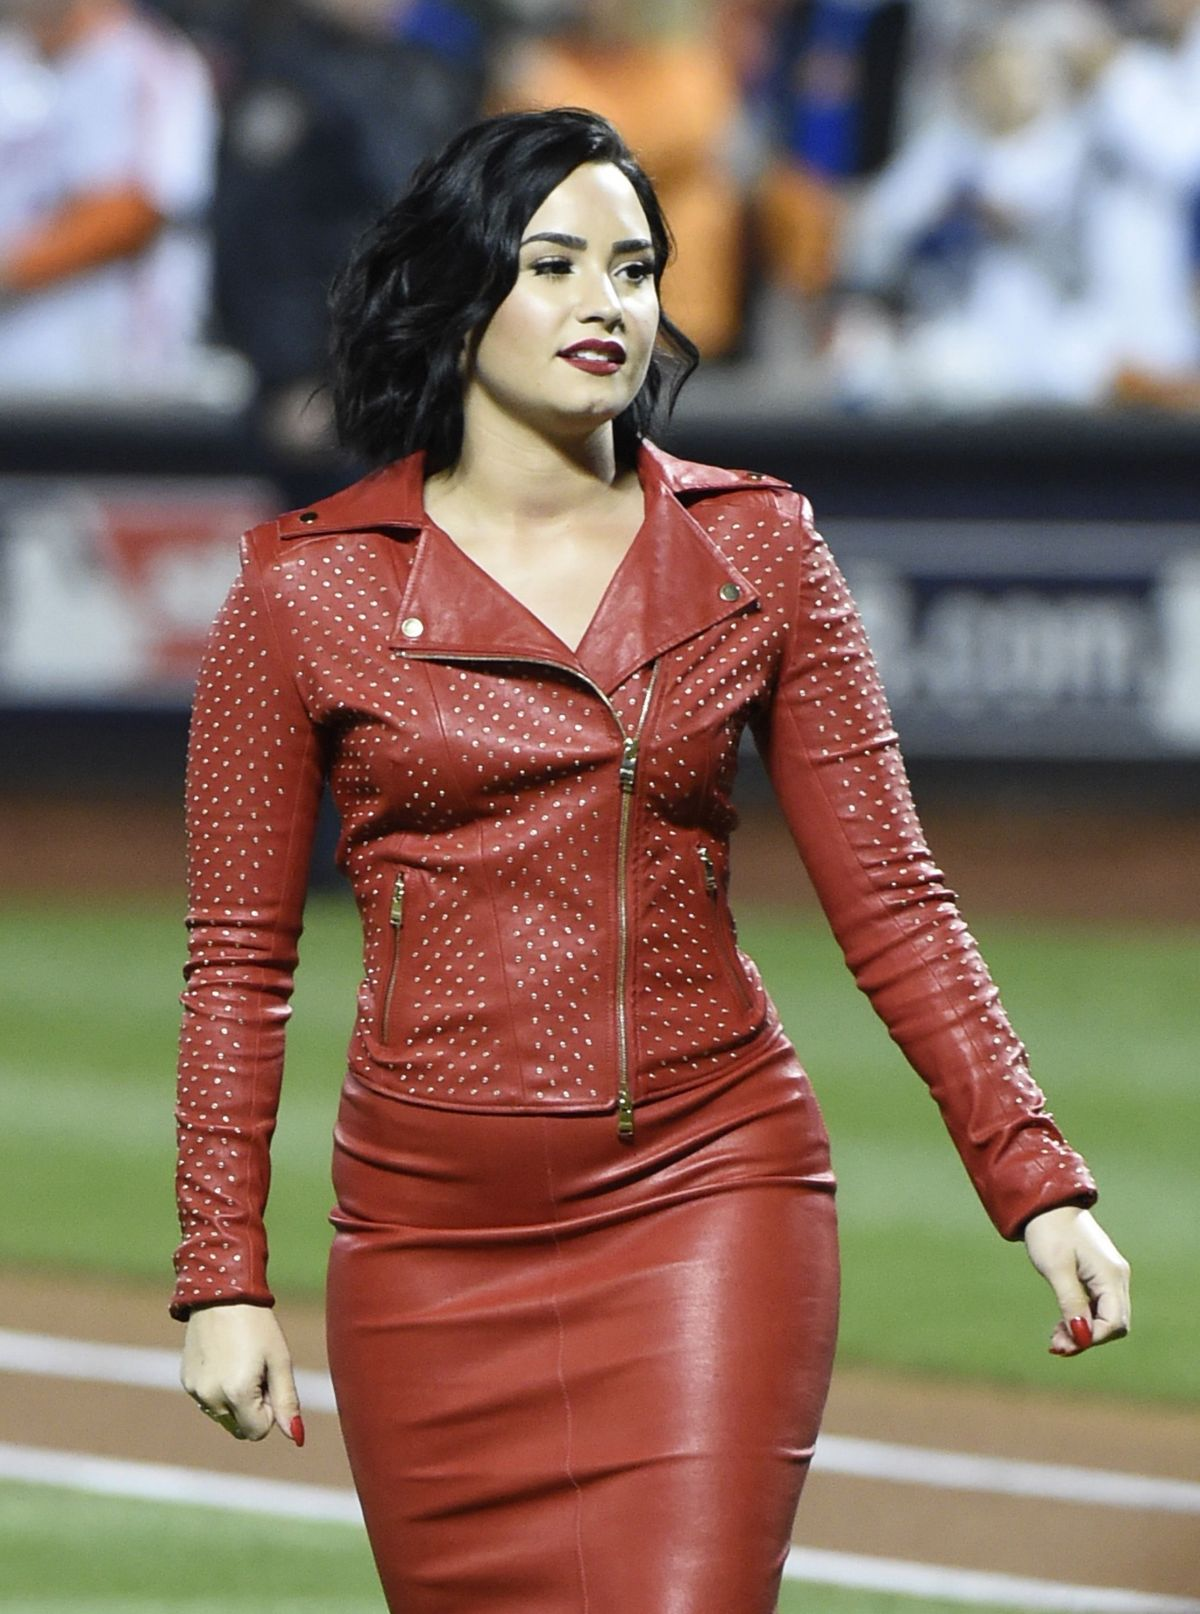 DEMI LOVATO Sings National Anthem at MLB World Series Game Four at The Citi Field in New York 10/31/2015